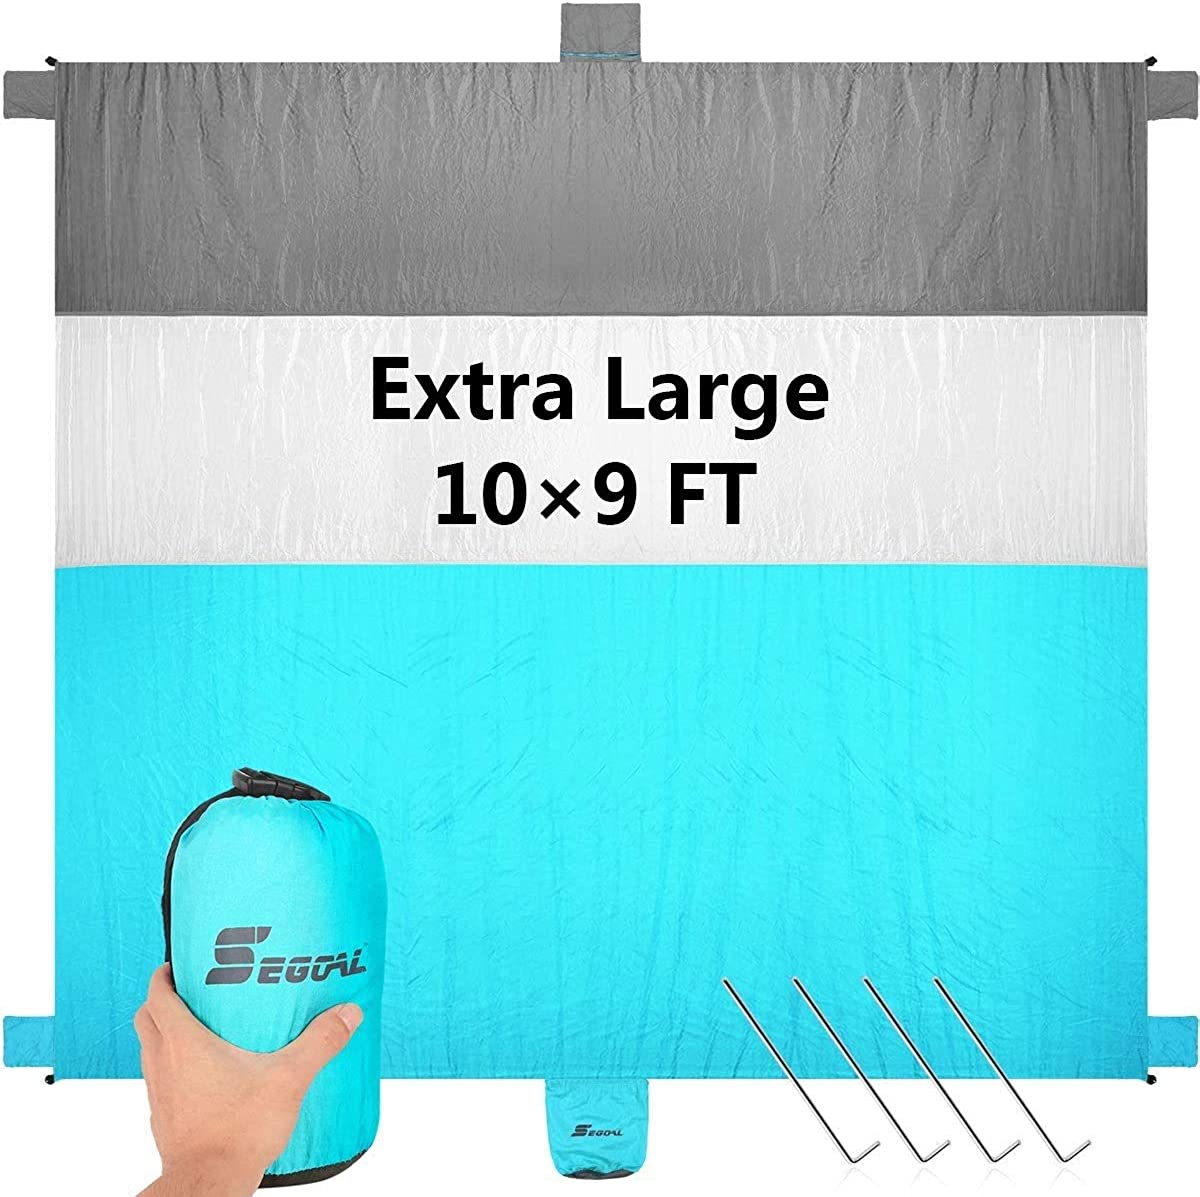 Hiking Waterproof Outdoor Picnic Mat for Beach Machine Washable OCOOPA 10X 9 Extra Large Beach Blanket Camping Music Festival Soft Lightweight Pocket Blanket